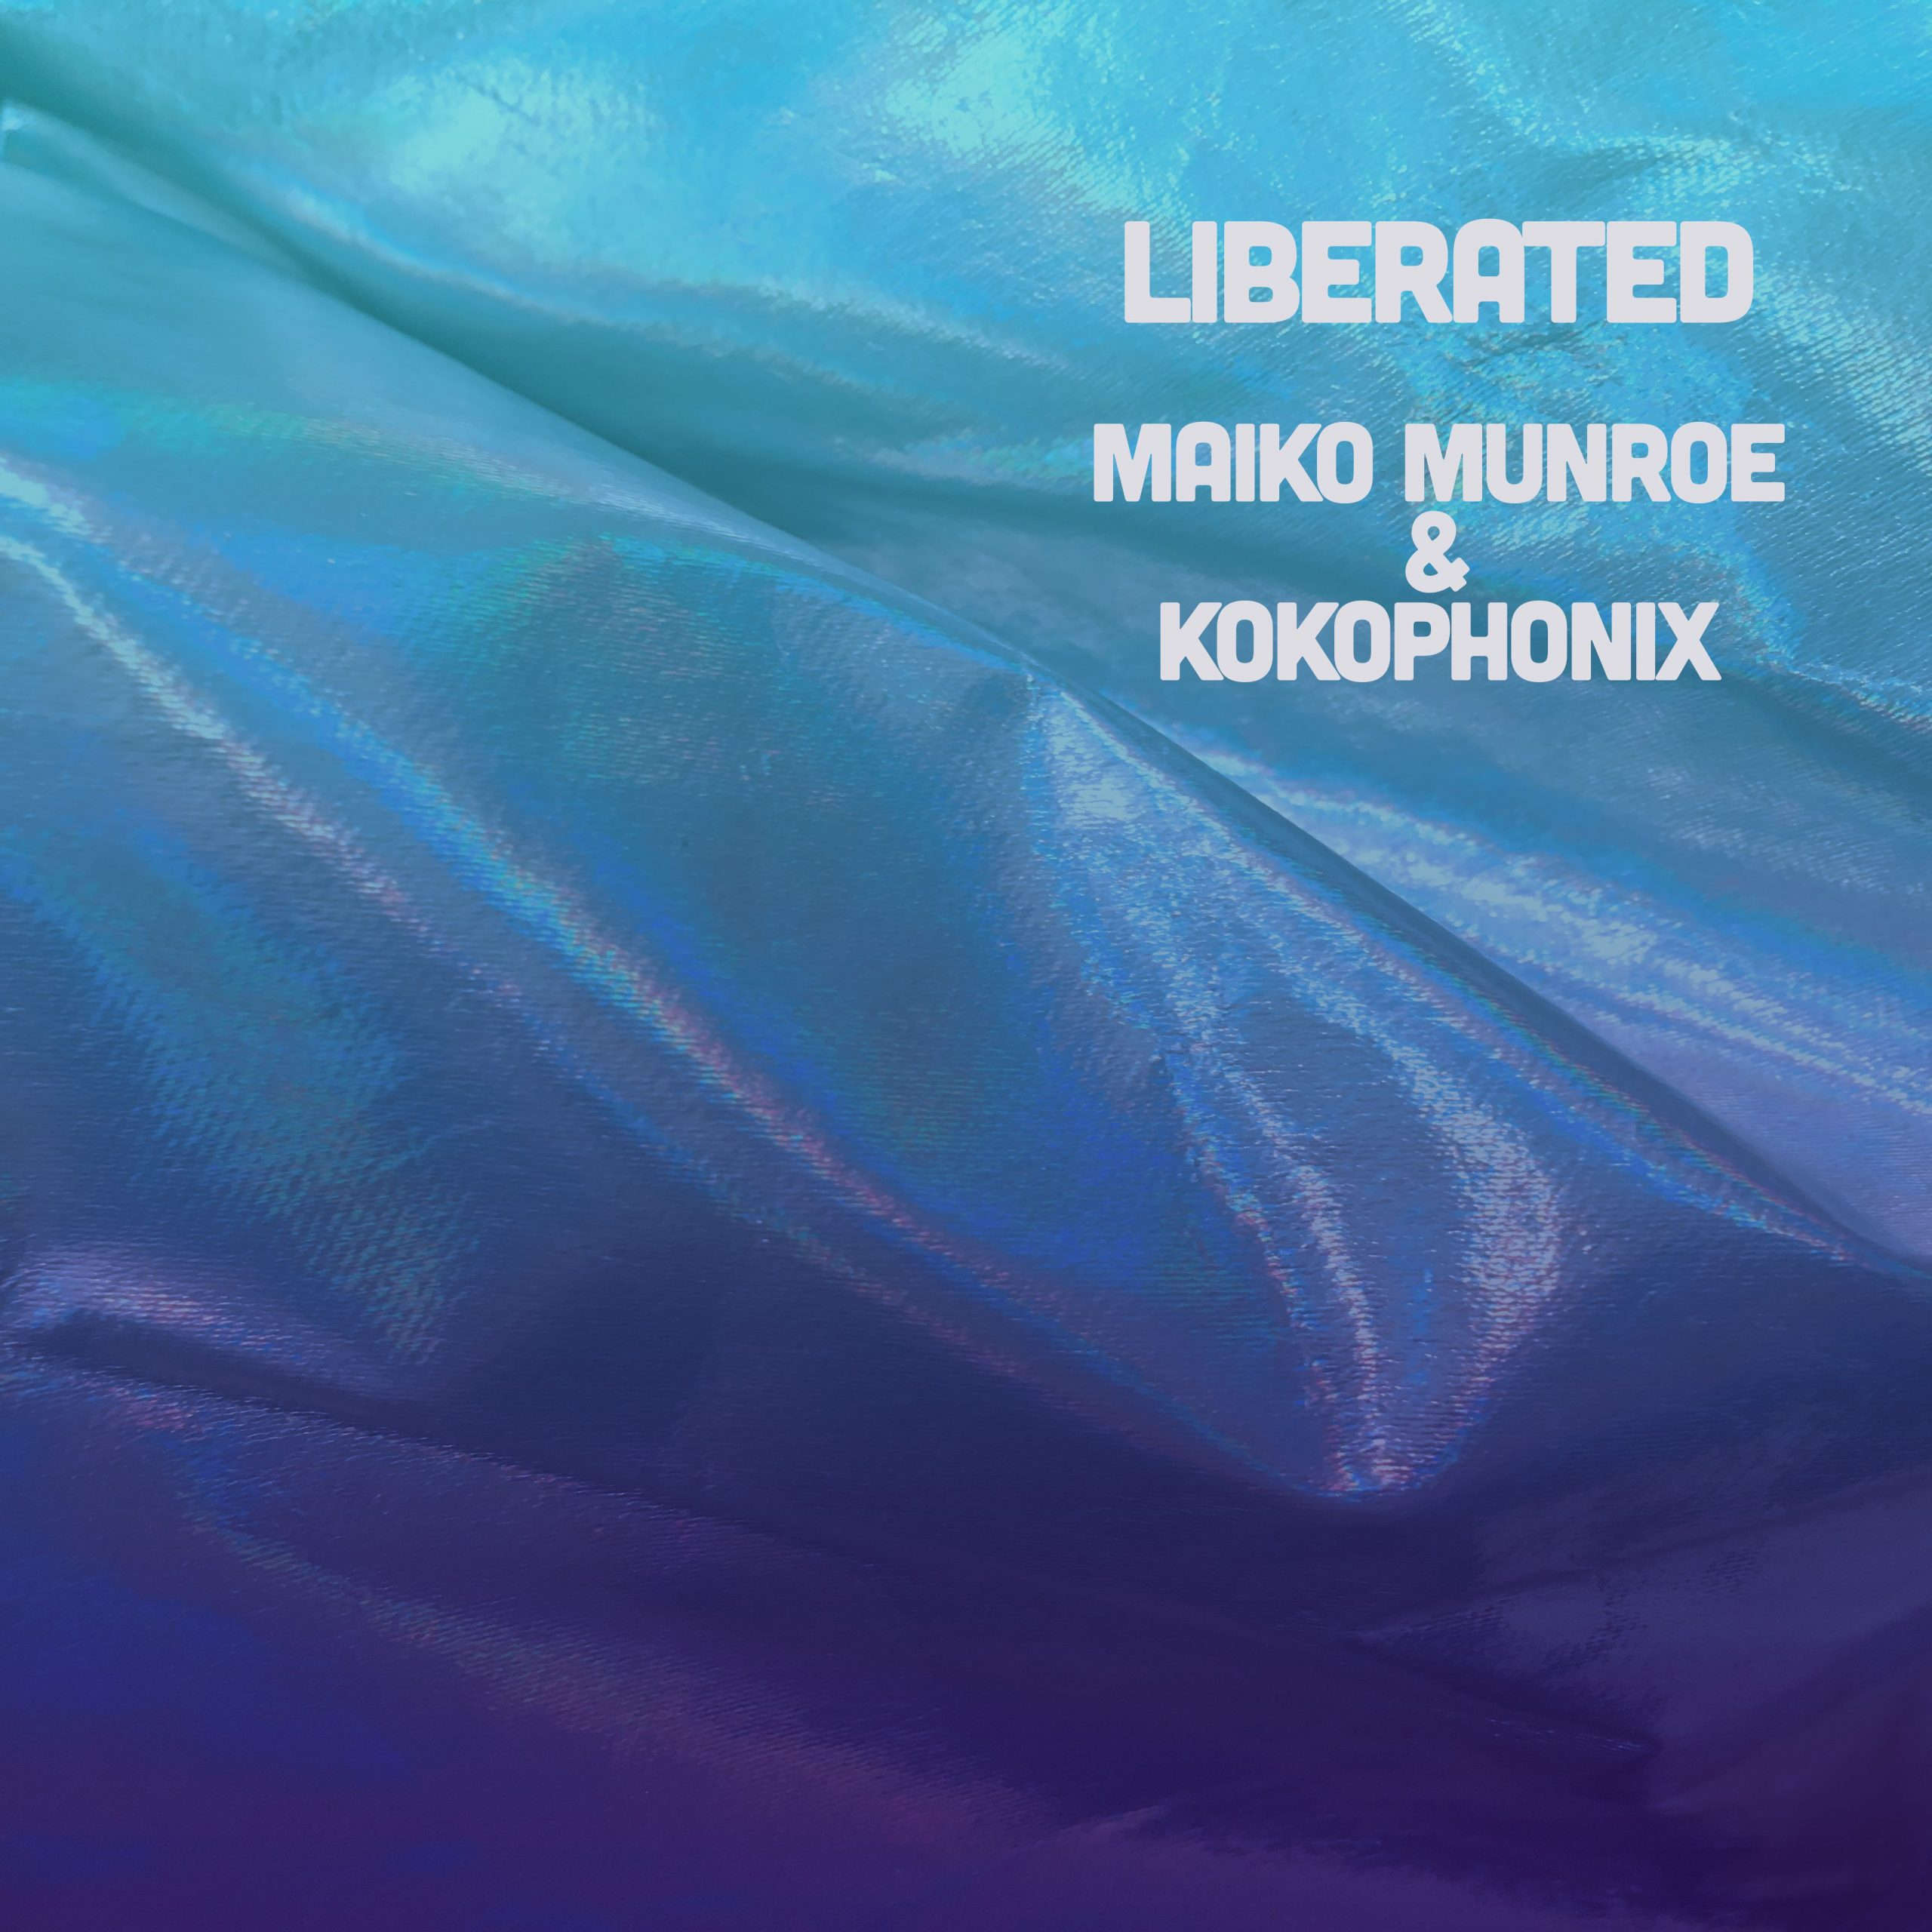 The Daily Feature: Sit Back And Relax With THIS Chilled Tune By Kokophonix and Maiko Munroe